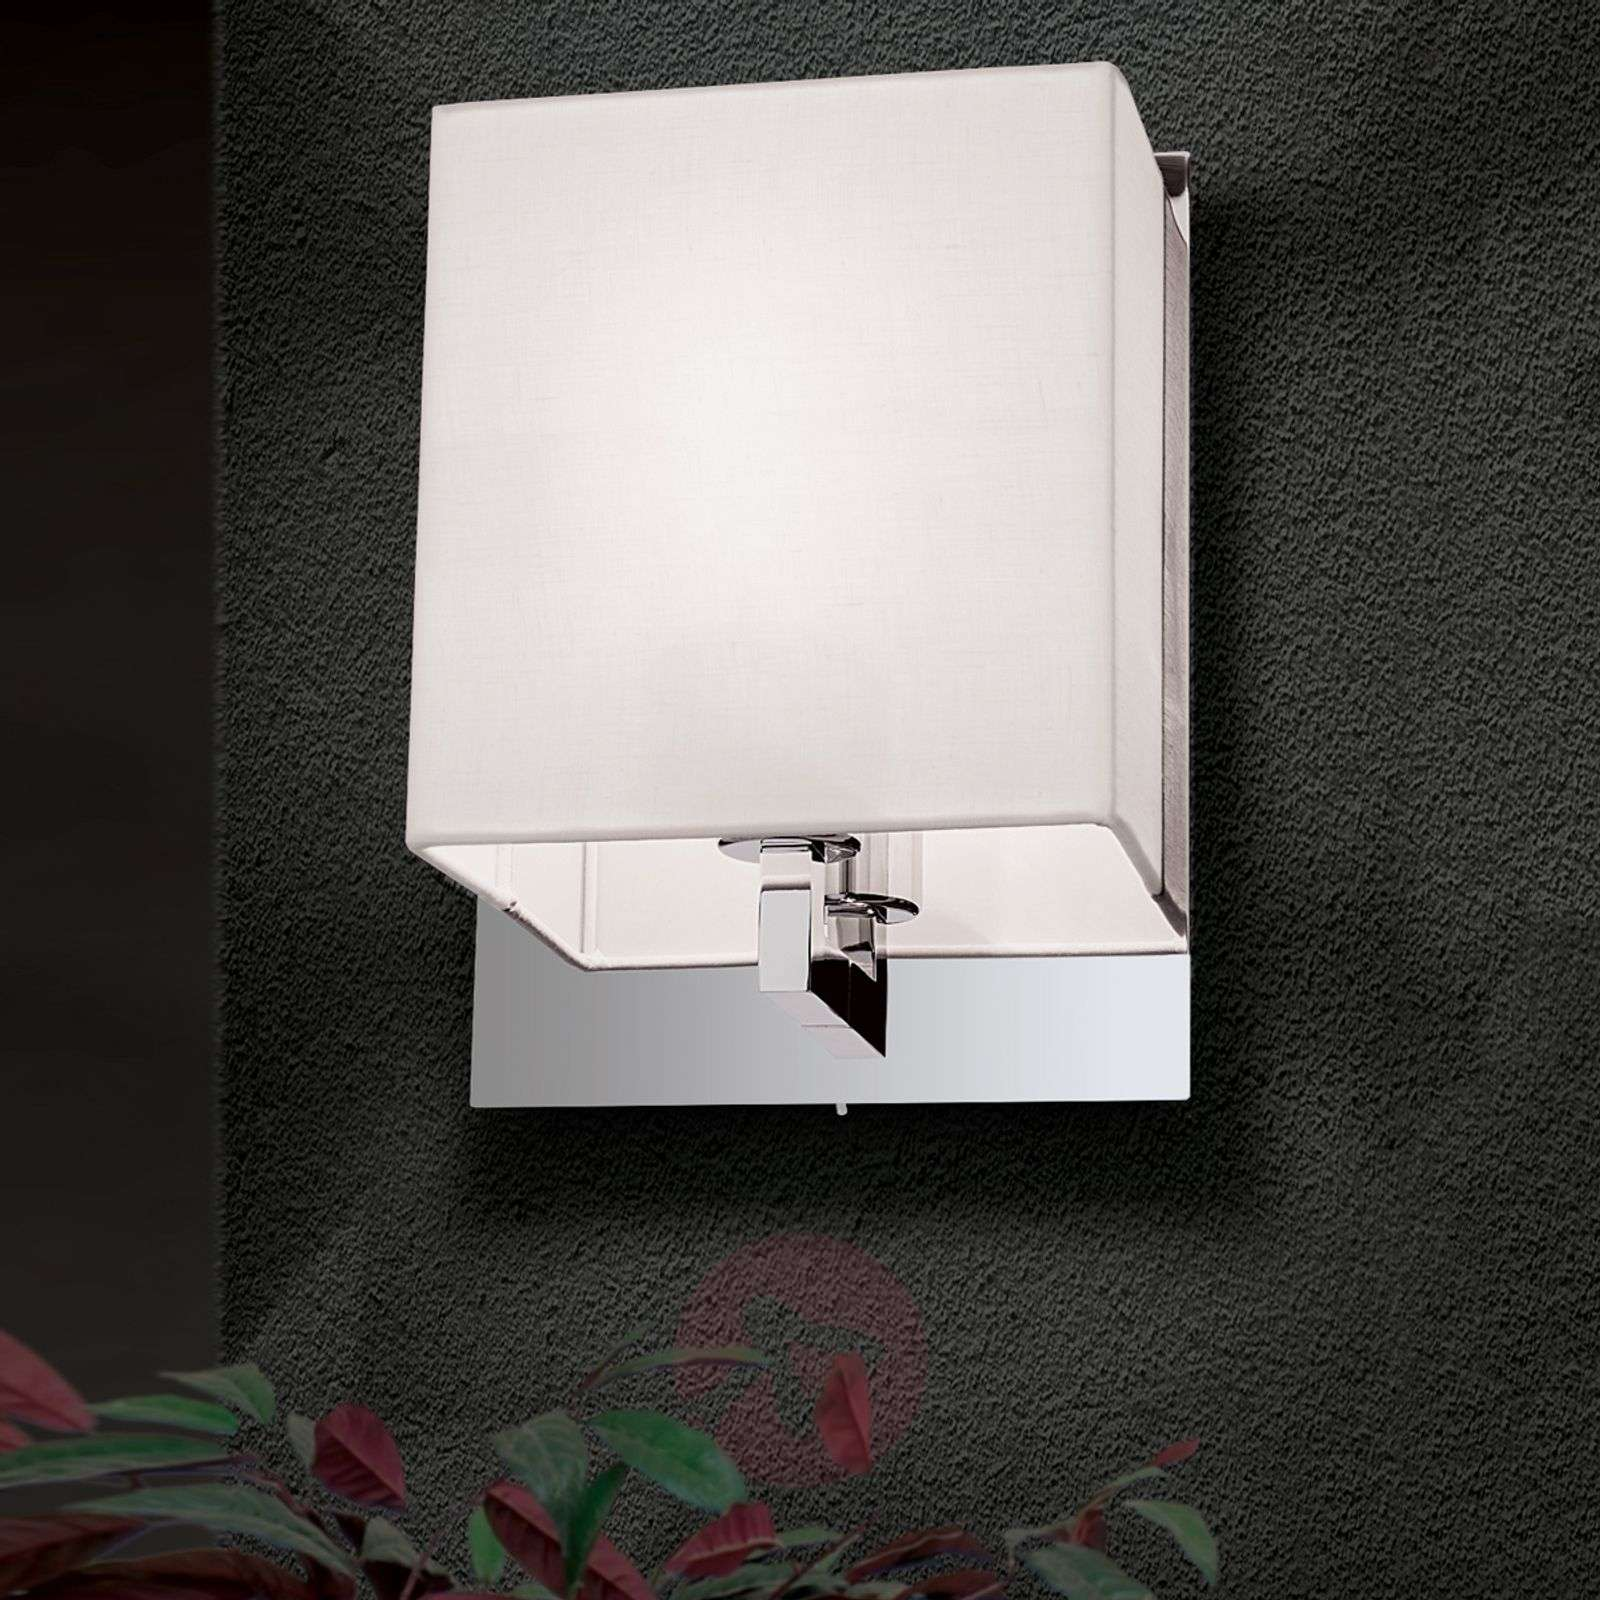 Fabric wall light Grigor with switch-7255161-01